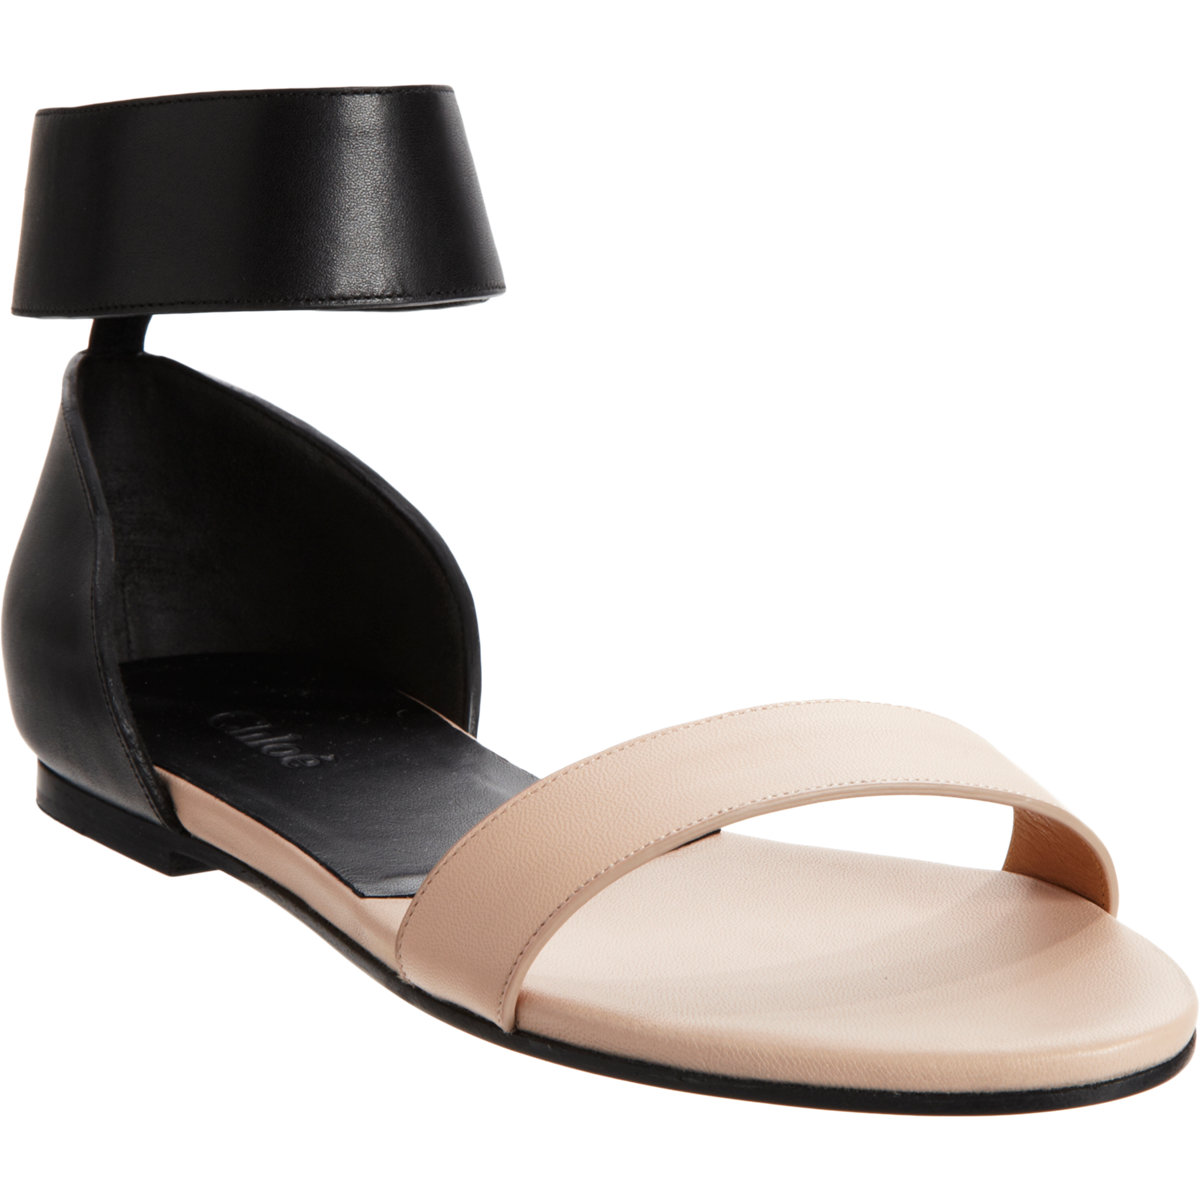 fashionable cheap price best prices sale online Chloé Bicolor Ankle Strap Sandals vVrY7